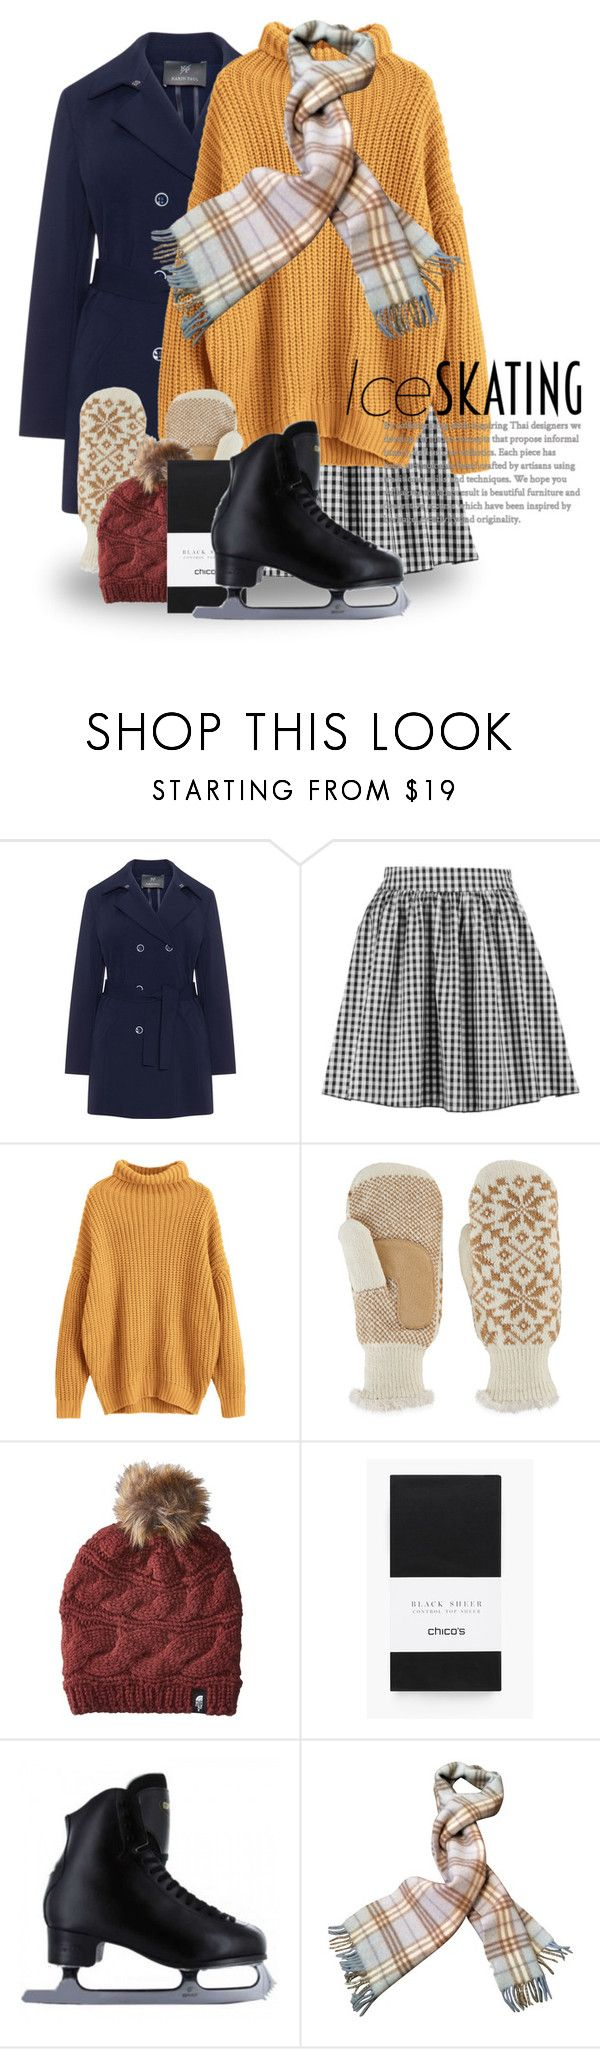 """""""Skate Date: Ice Skating Outfit 5052"""" by boxthoughts ❤ liked on Polyvore featuring Boohoo, Isotoner, The North Face, Chico's, Burberry and iceskatingoutfit"""